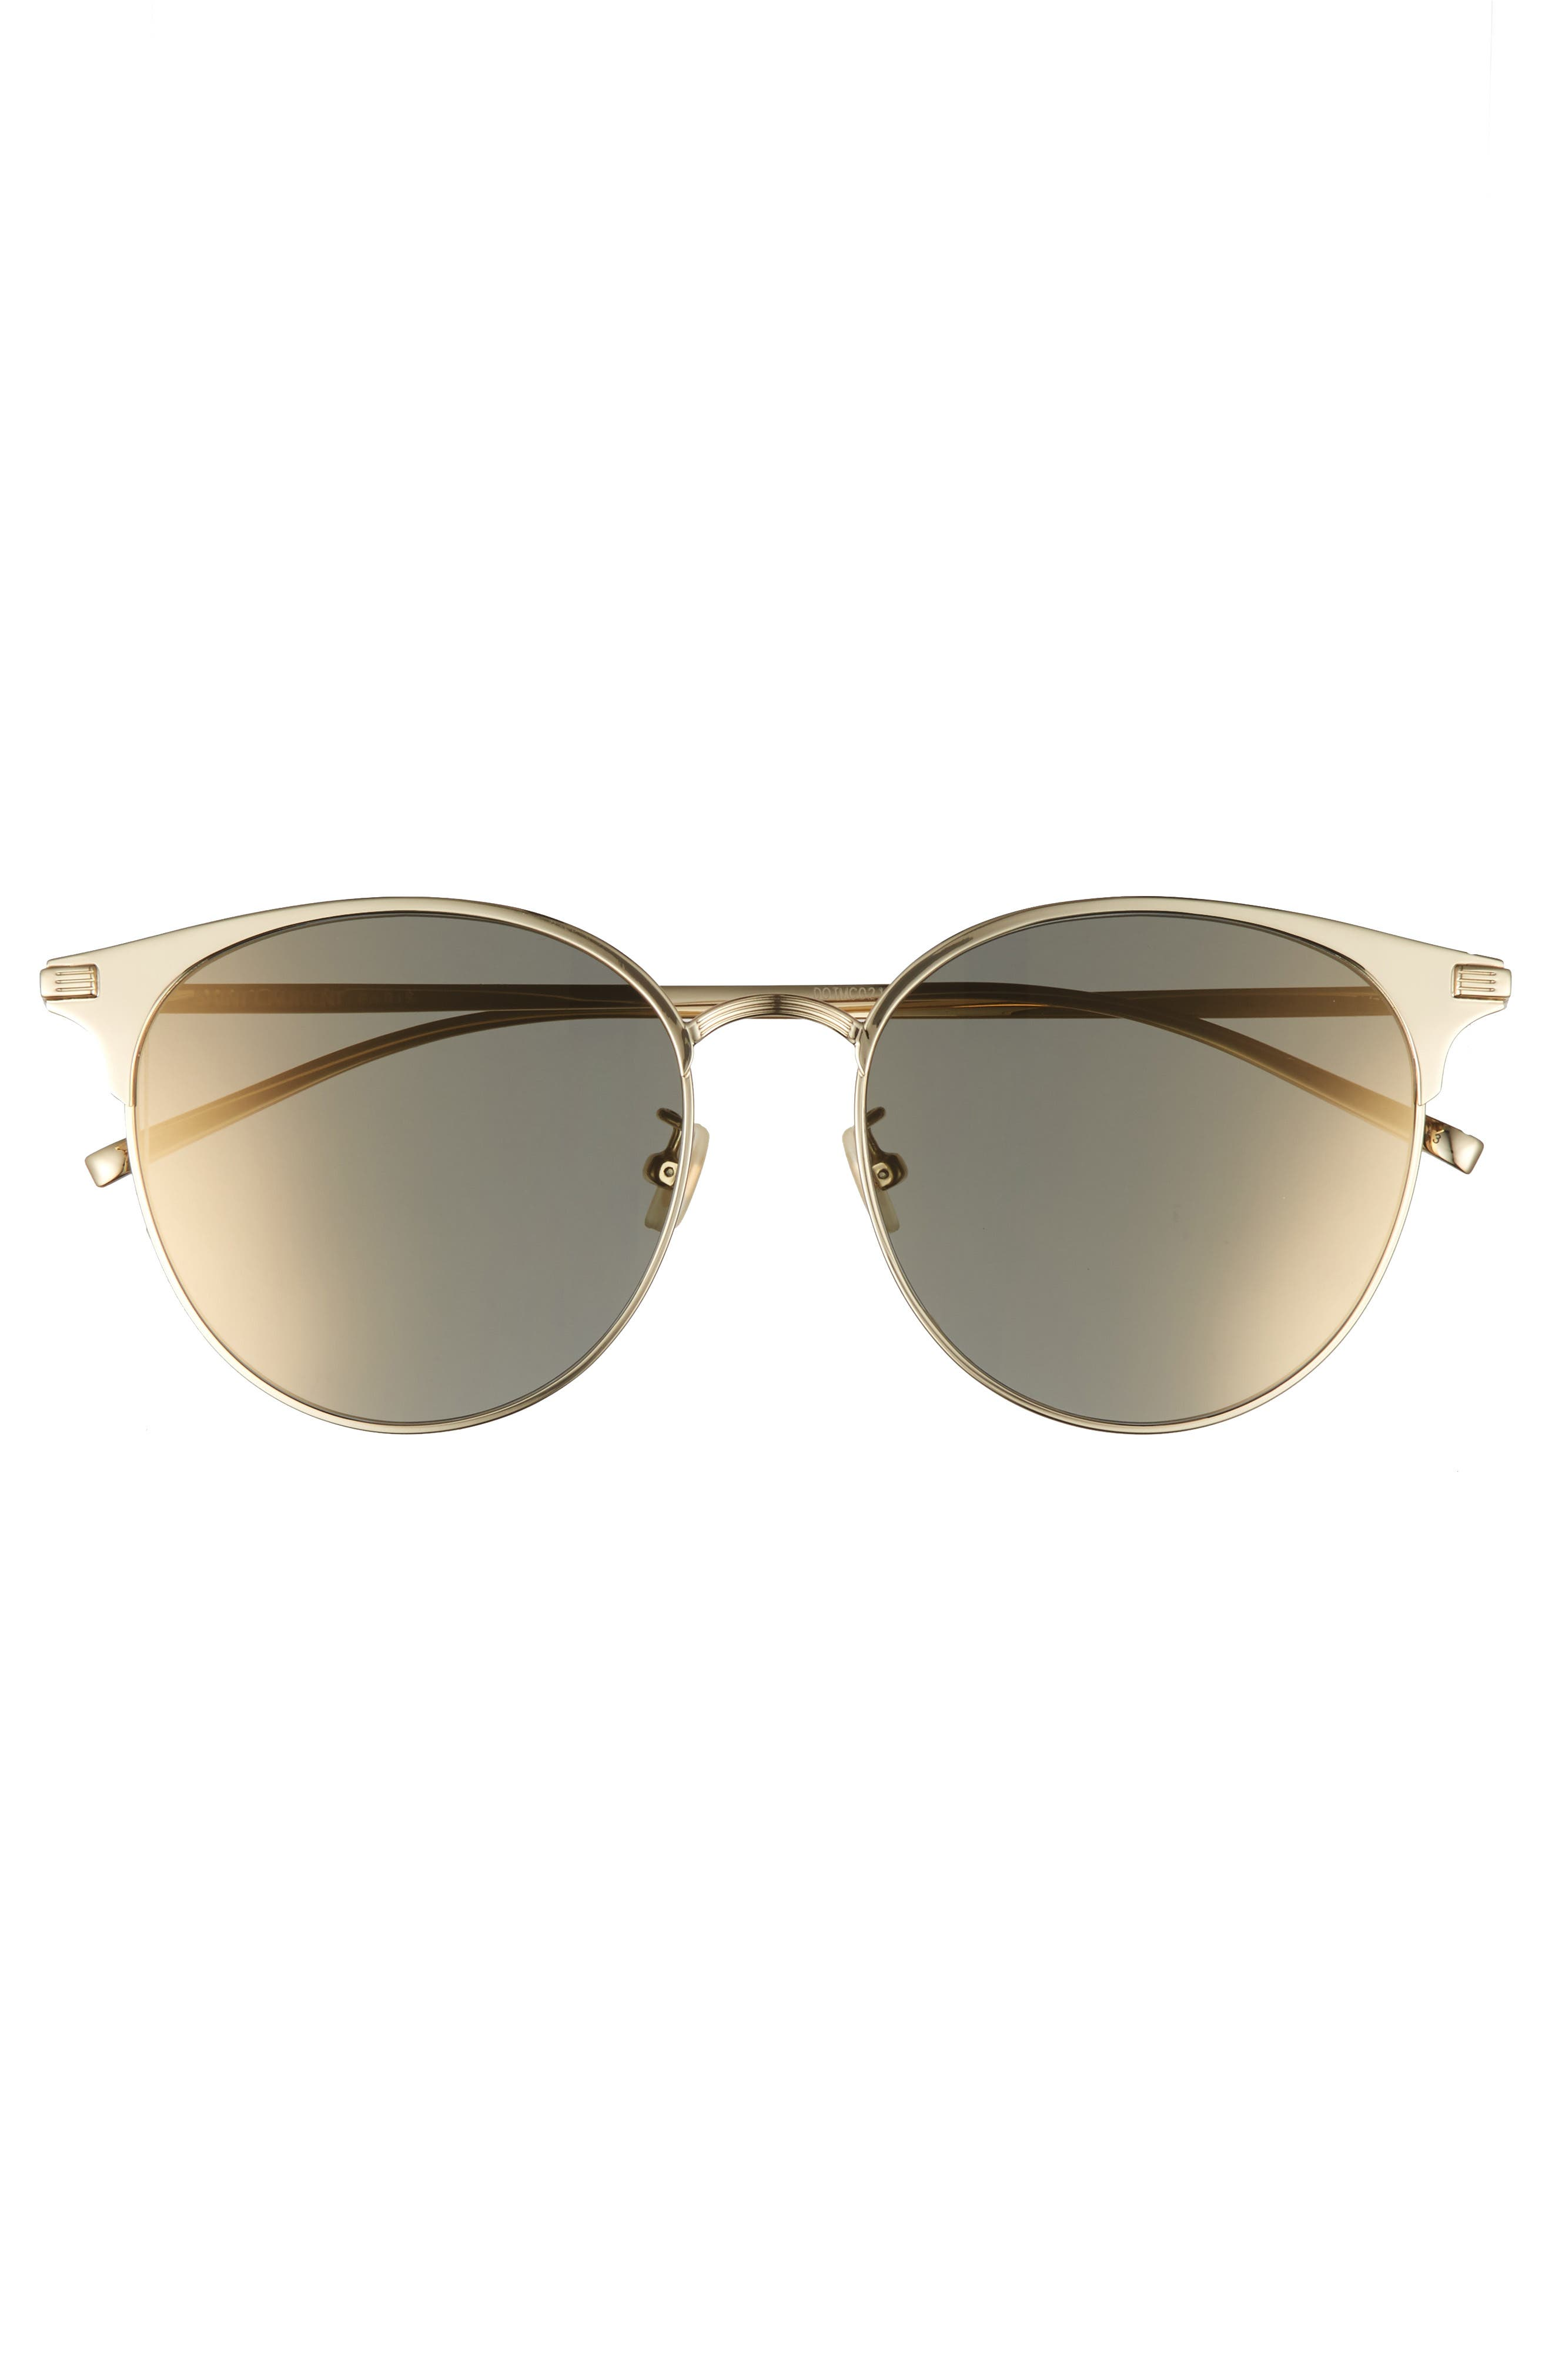 57mm Sunglasses,                             Alternate thumbnail 3, color,                             Gold